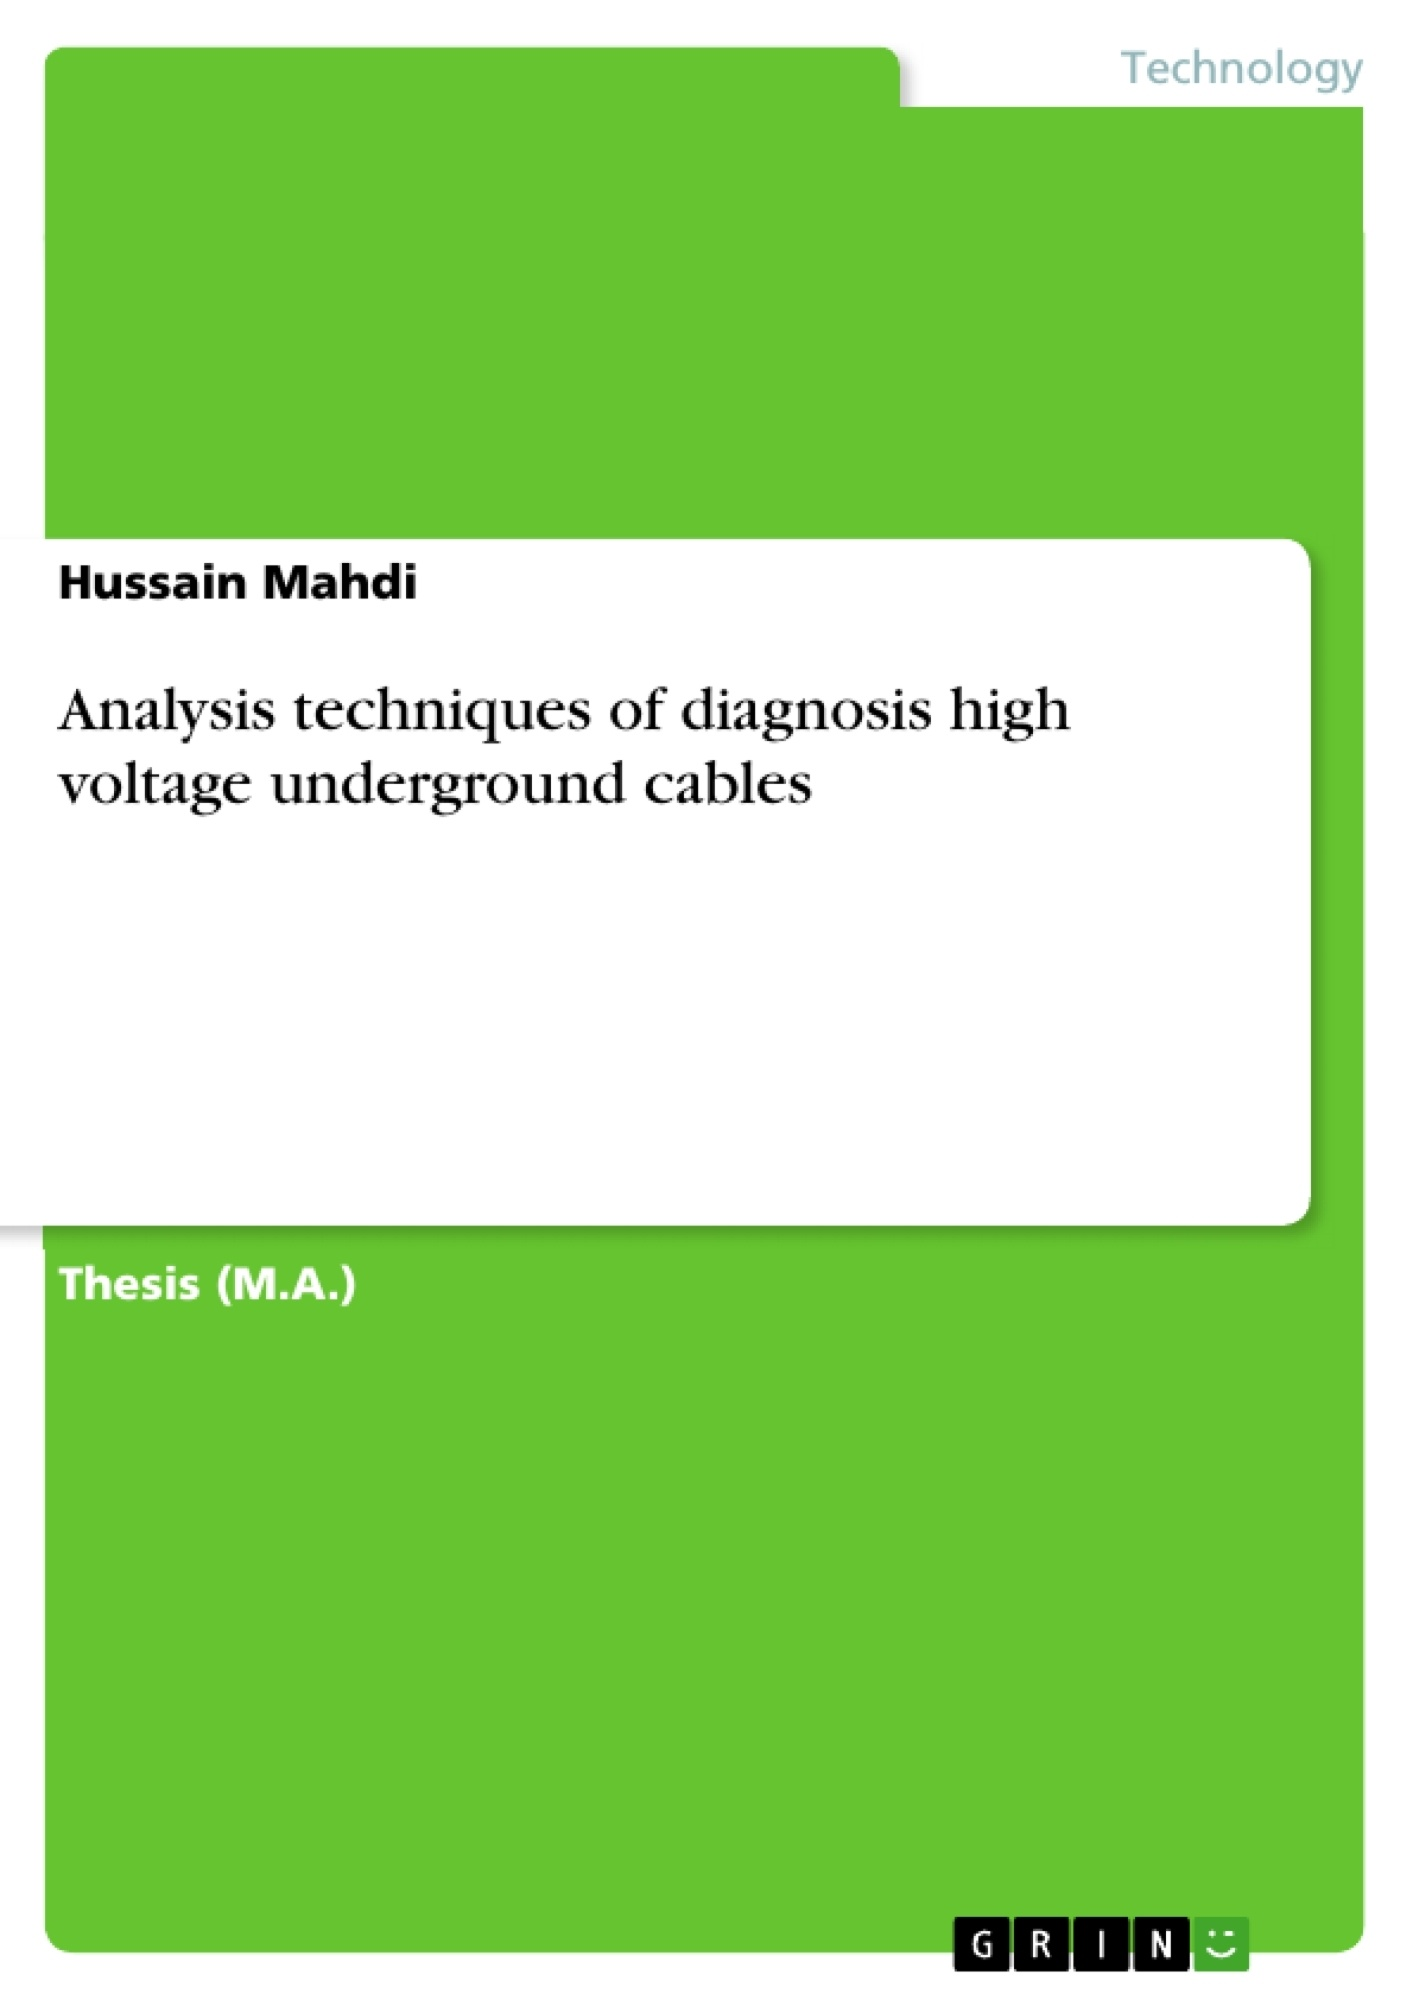 Title: Analysis techniques of diagnosis high voltage underground cables